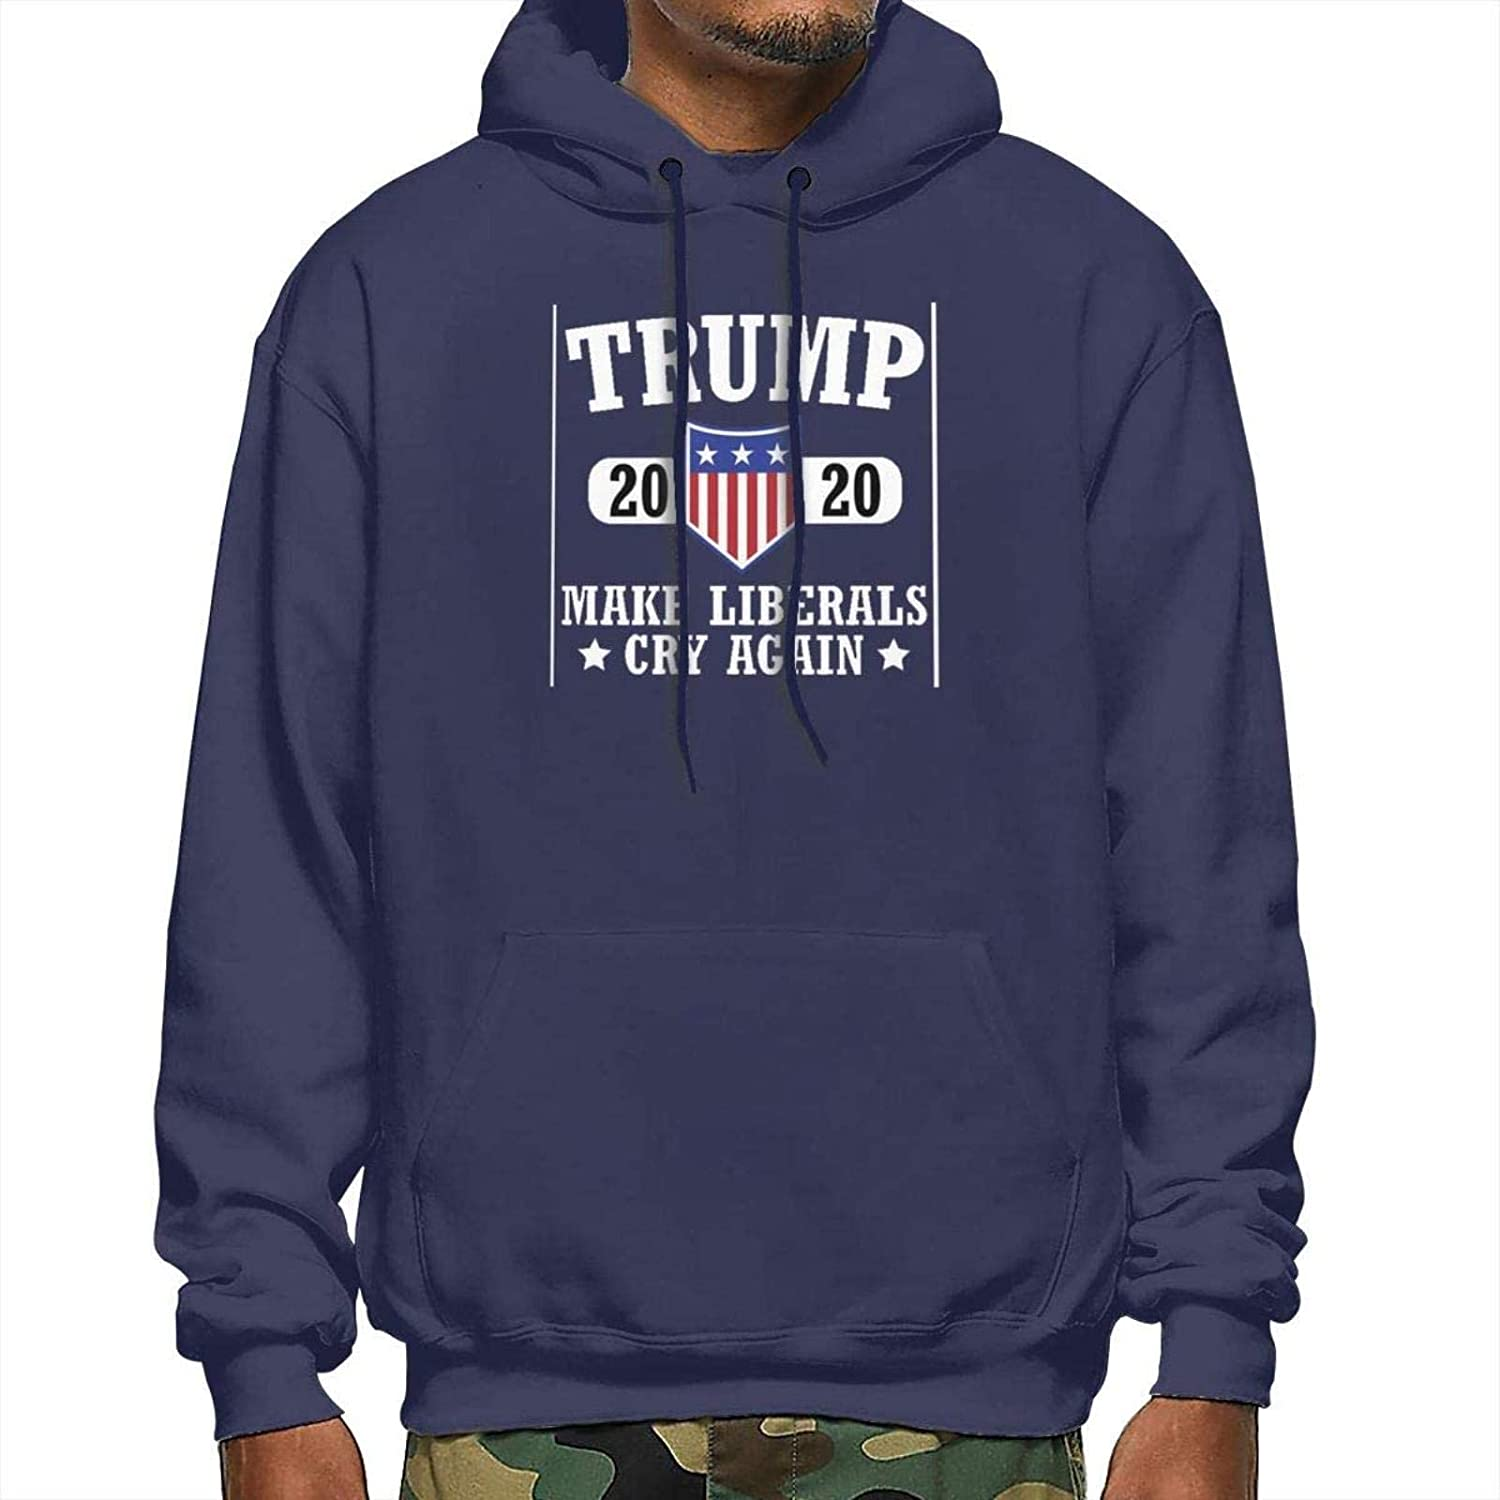 Mens Hoodie Sweatshirt 2020 Make Liberals Cry Again Pullover for Men